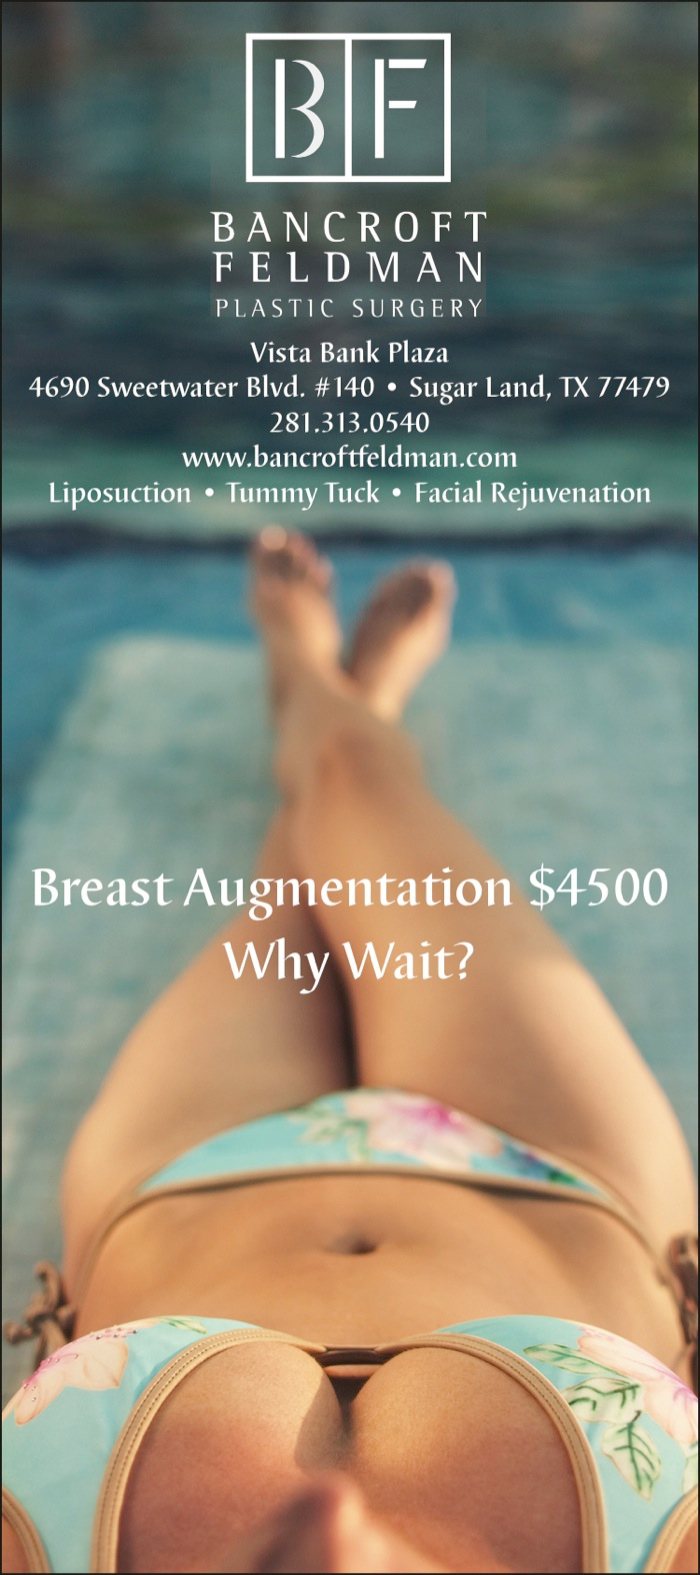 Black Friday Breast Augmentation Special